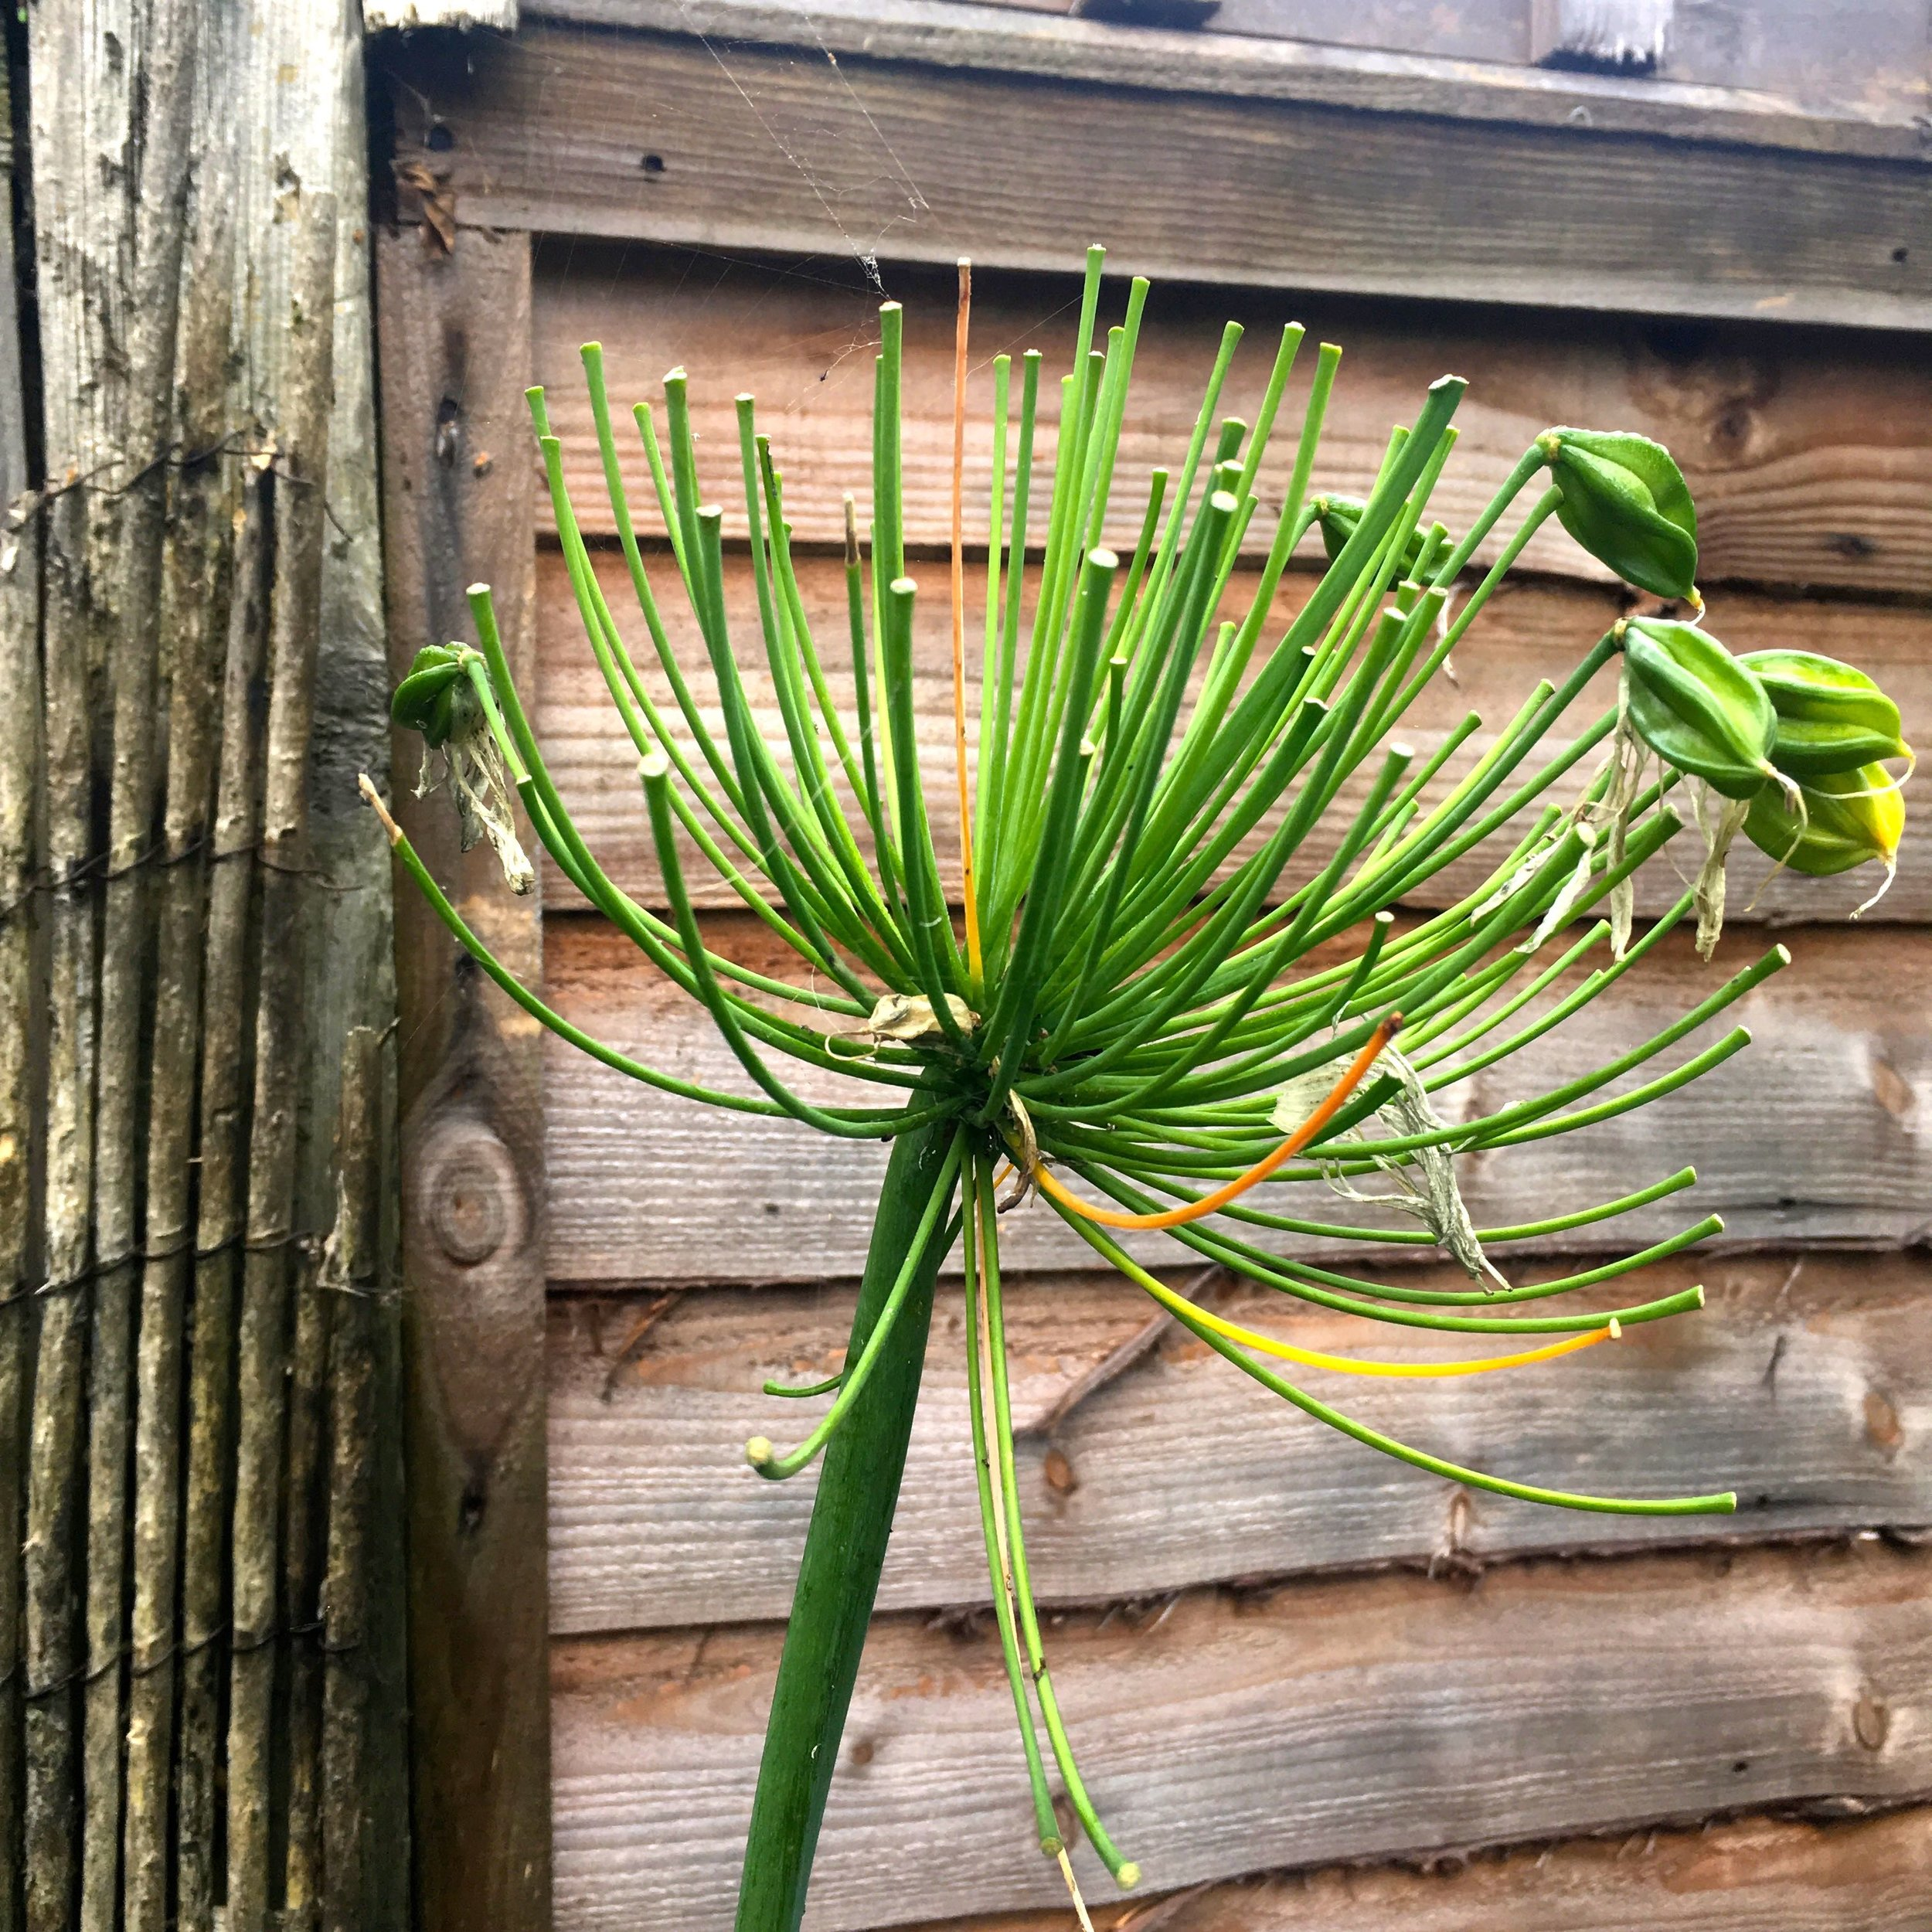 The agapanthus still providing structure